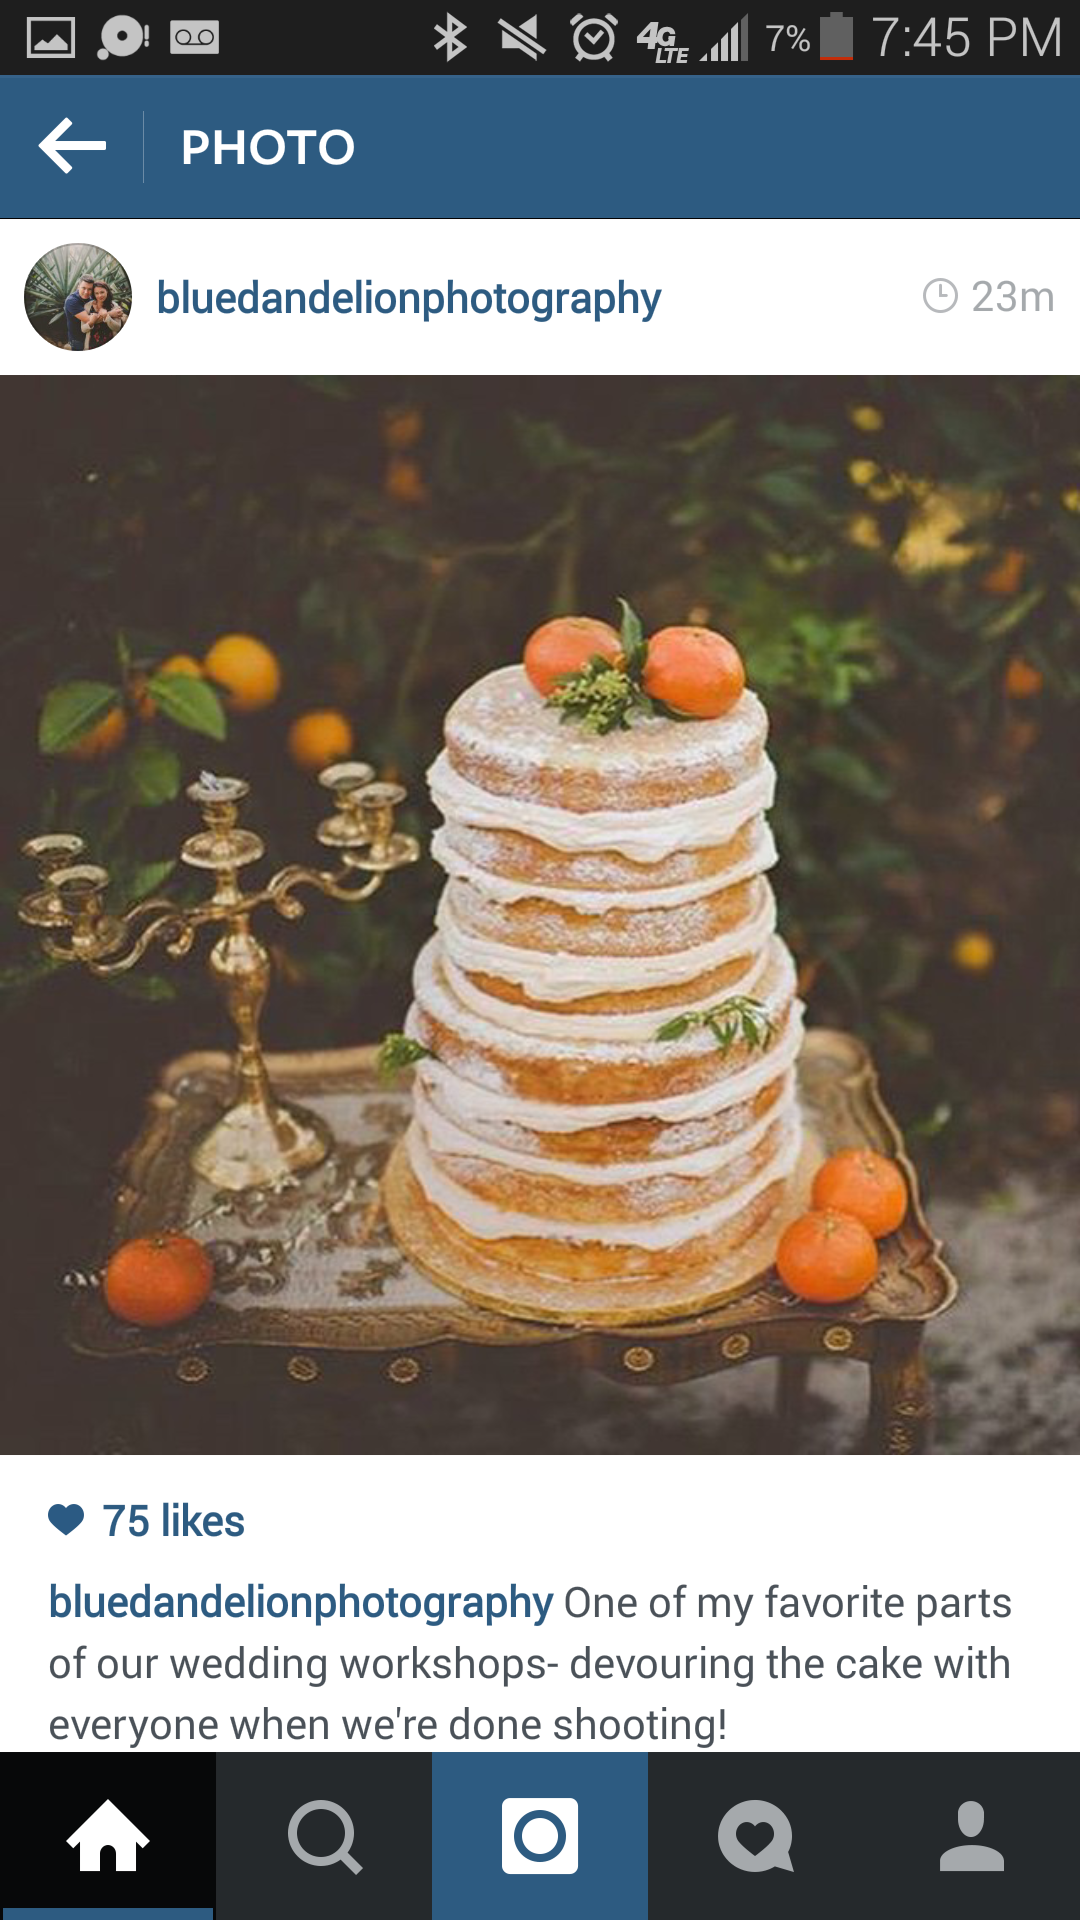 Love this cake Blue dandelion photography shot at a work shop!!